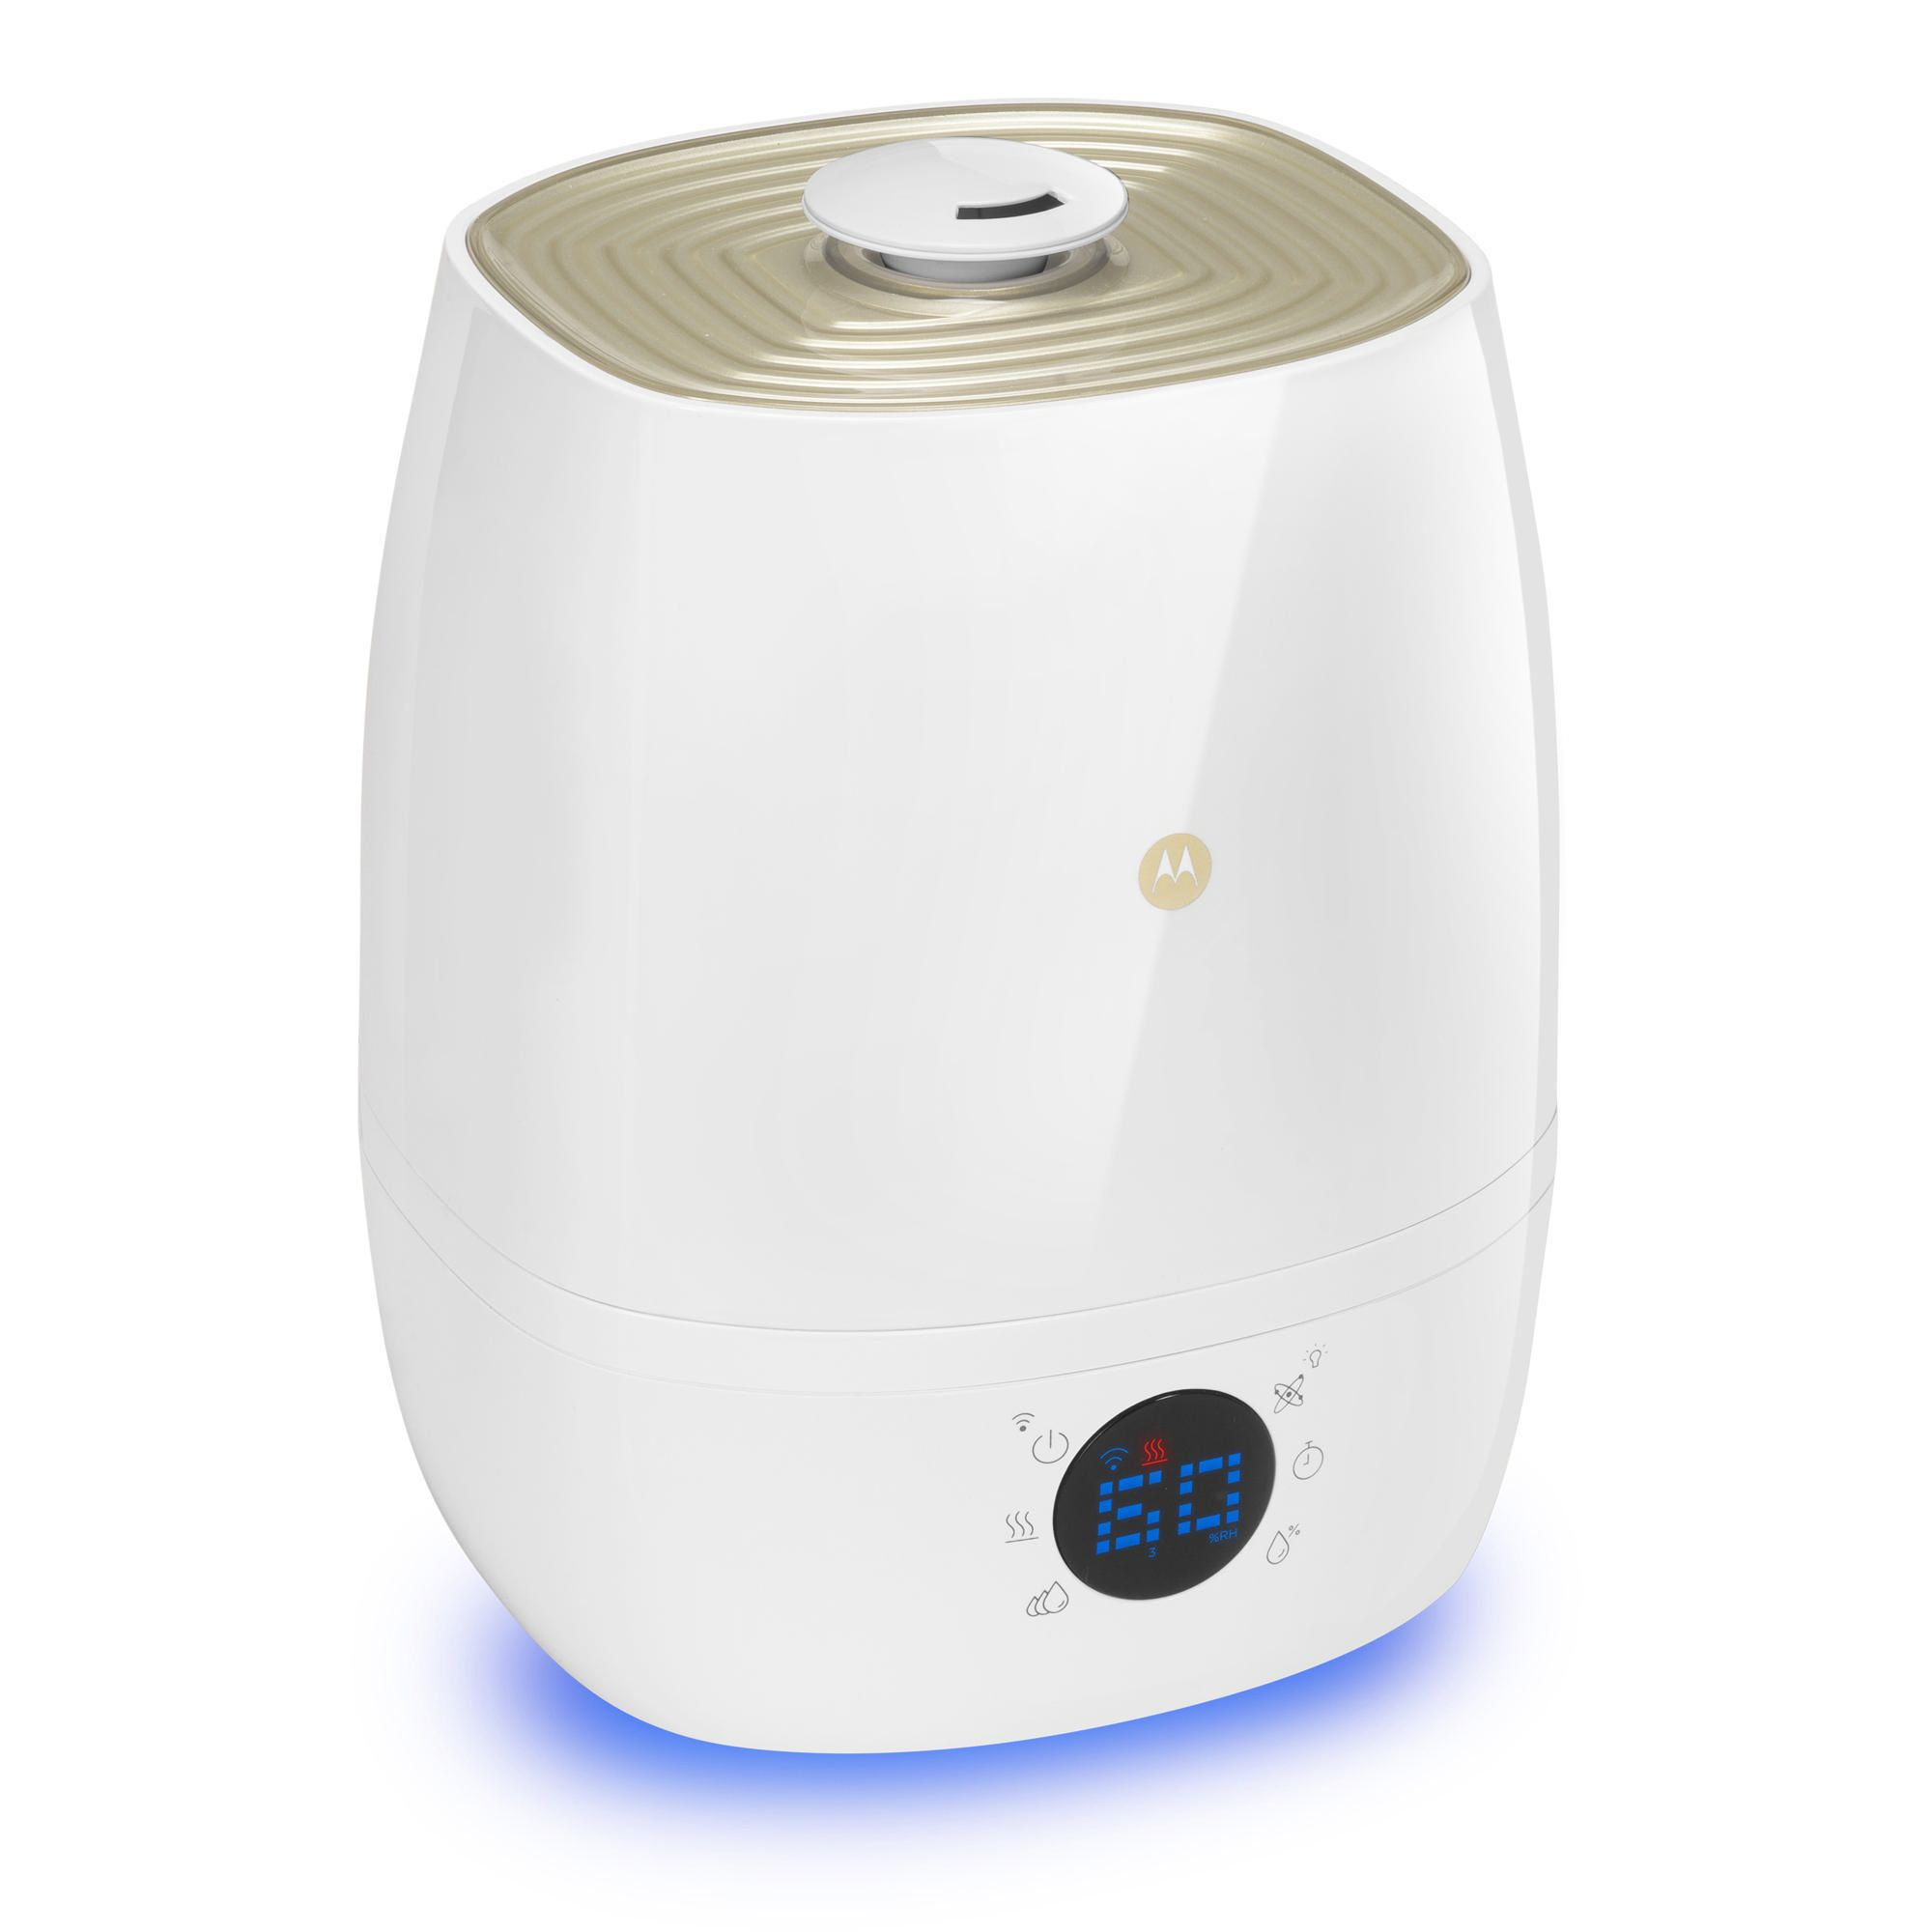 Pin by Babylist Eng on Prod | Best humidifier, Humidifier ...